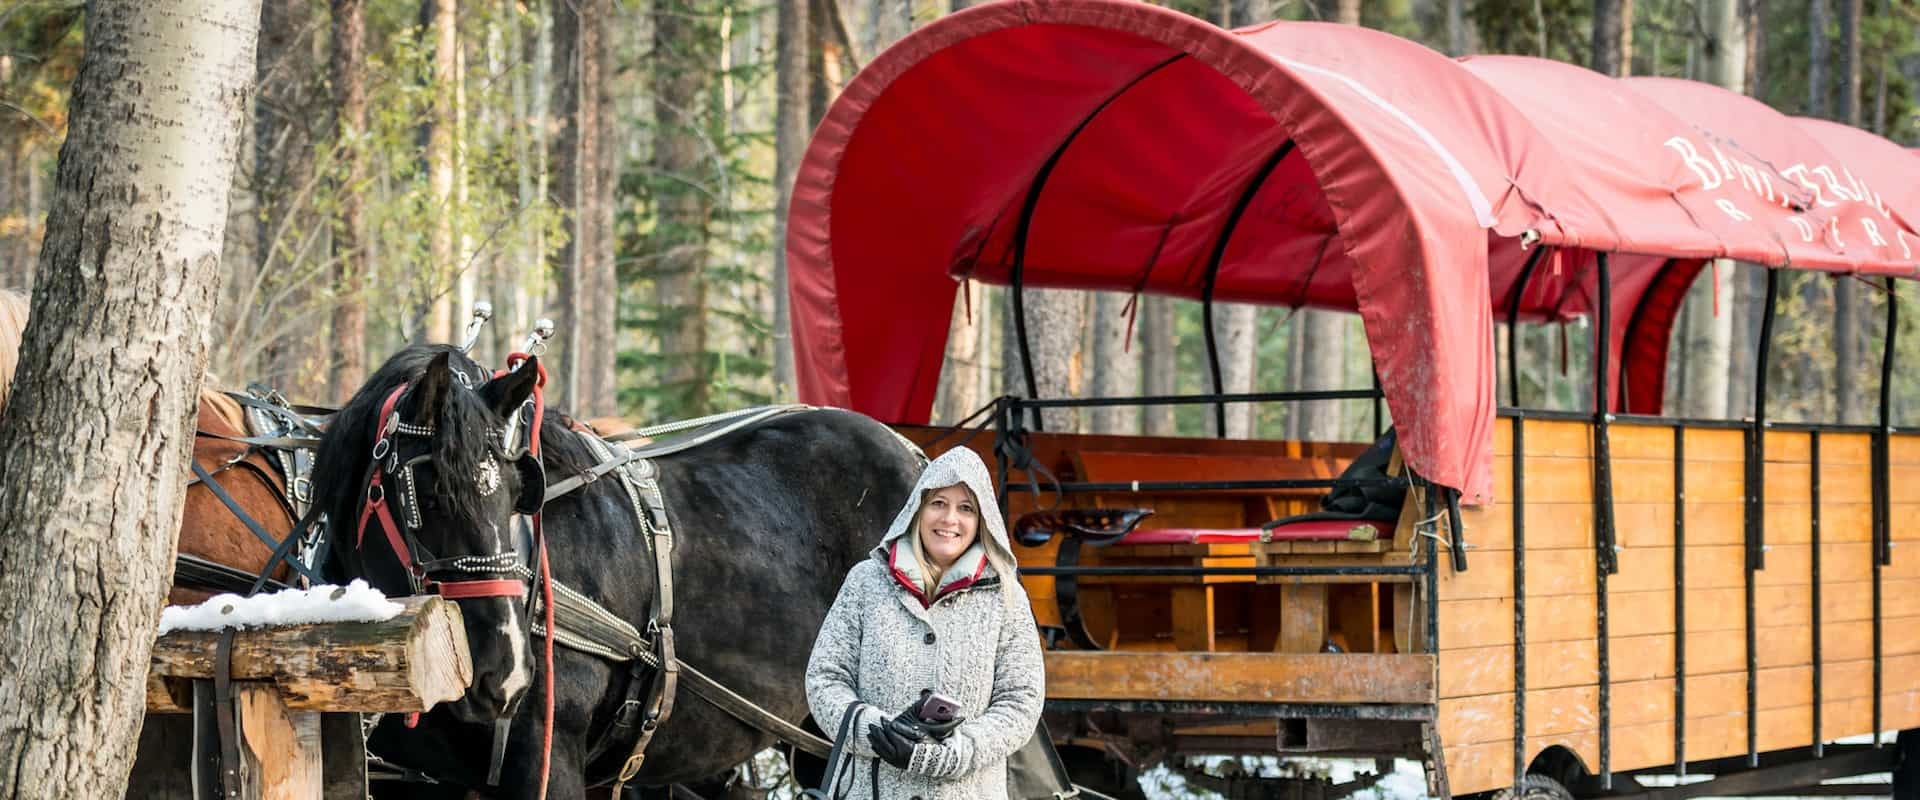 Take a free holiday wagon ride in Banff